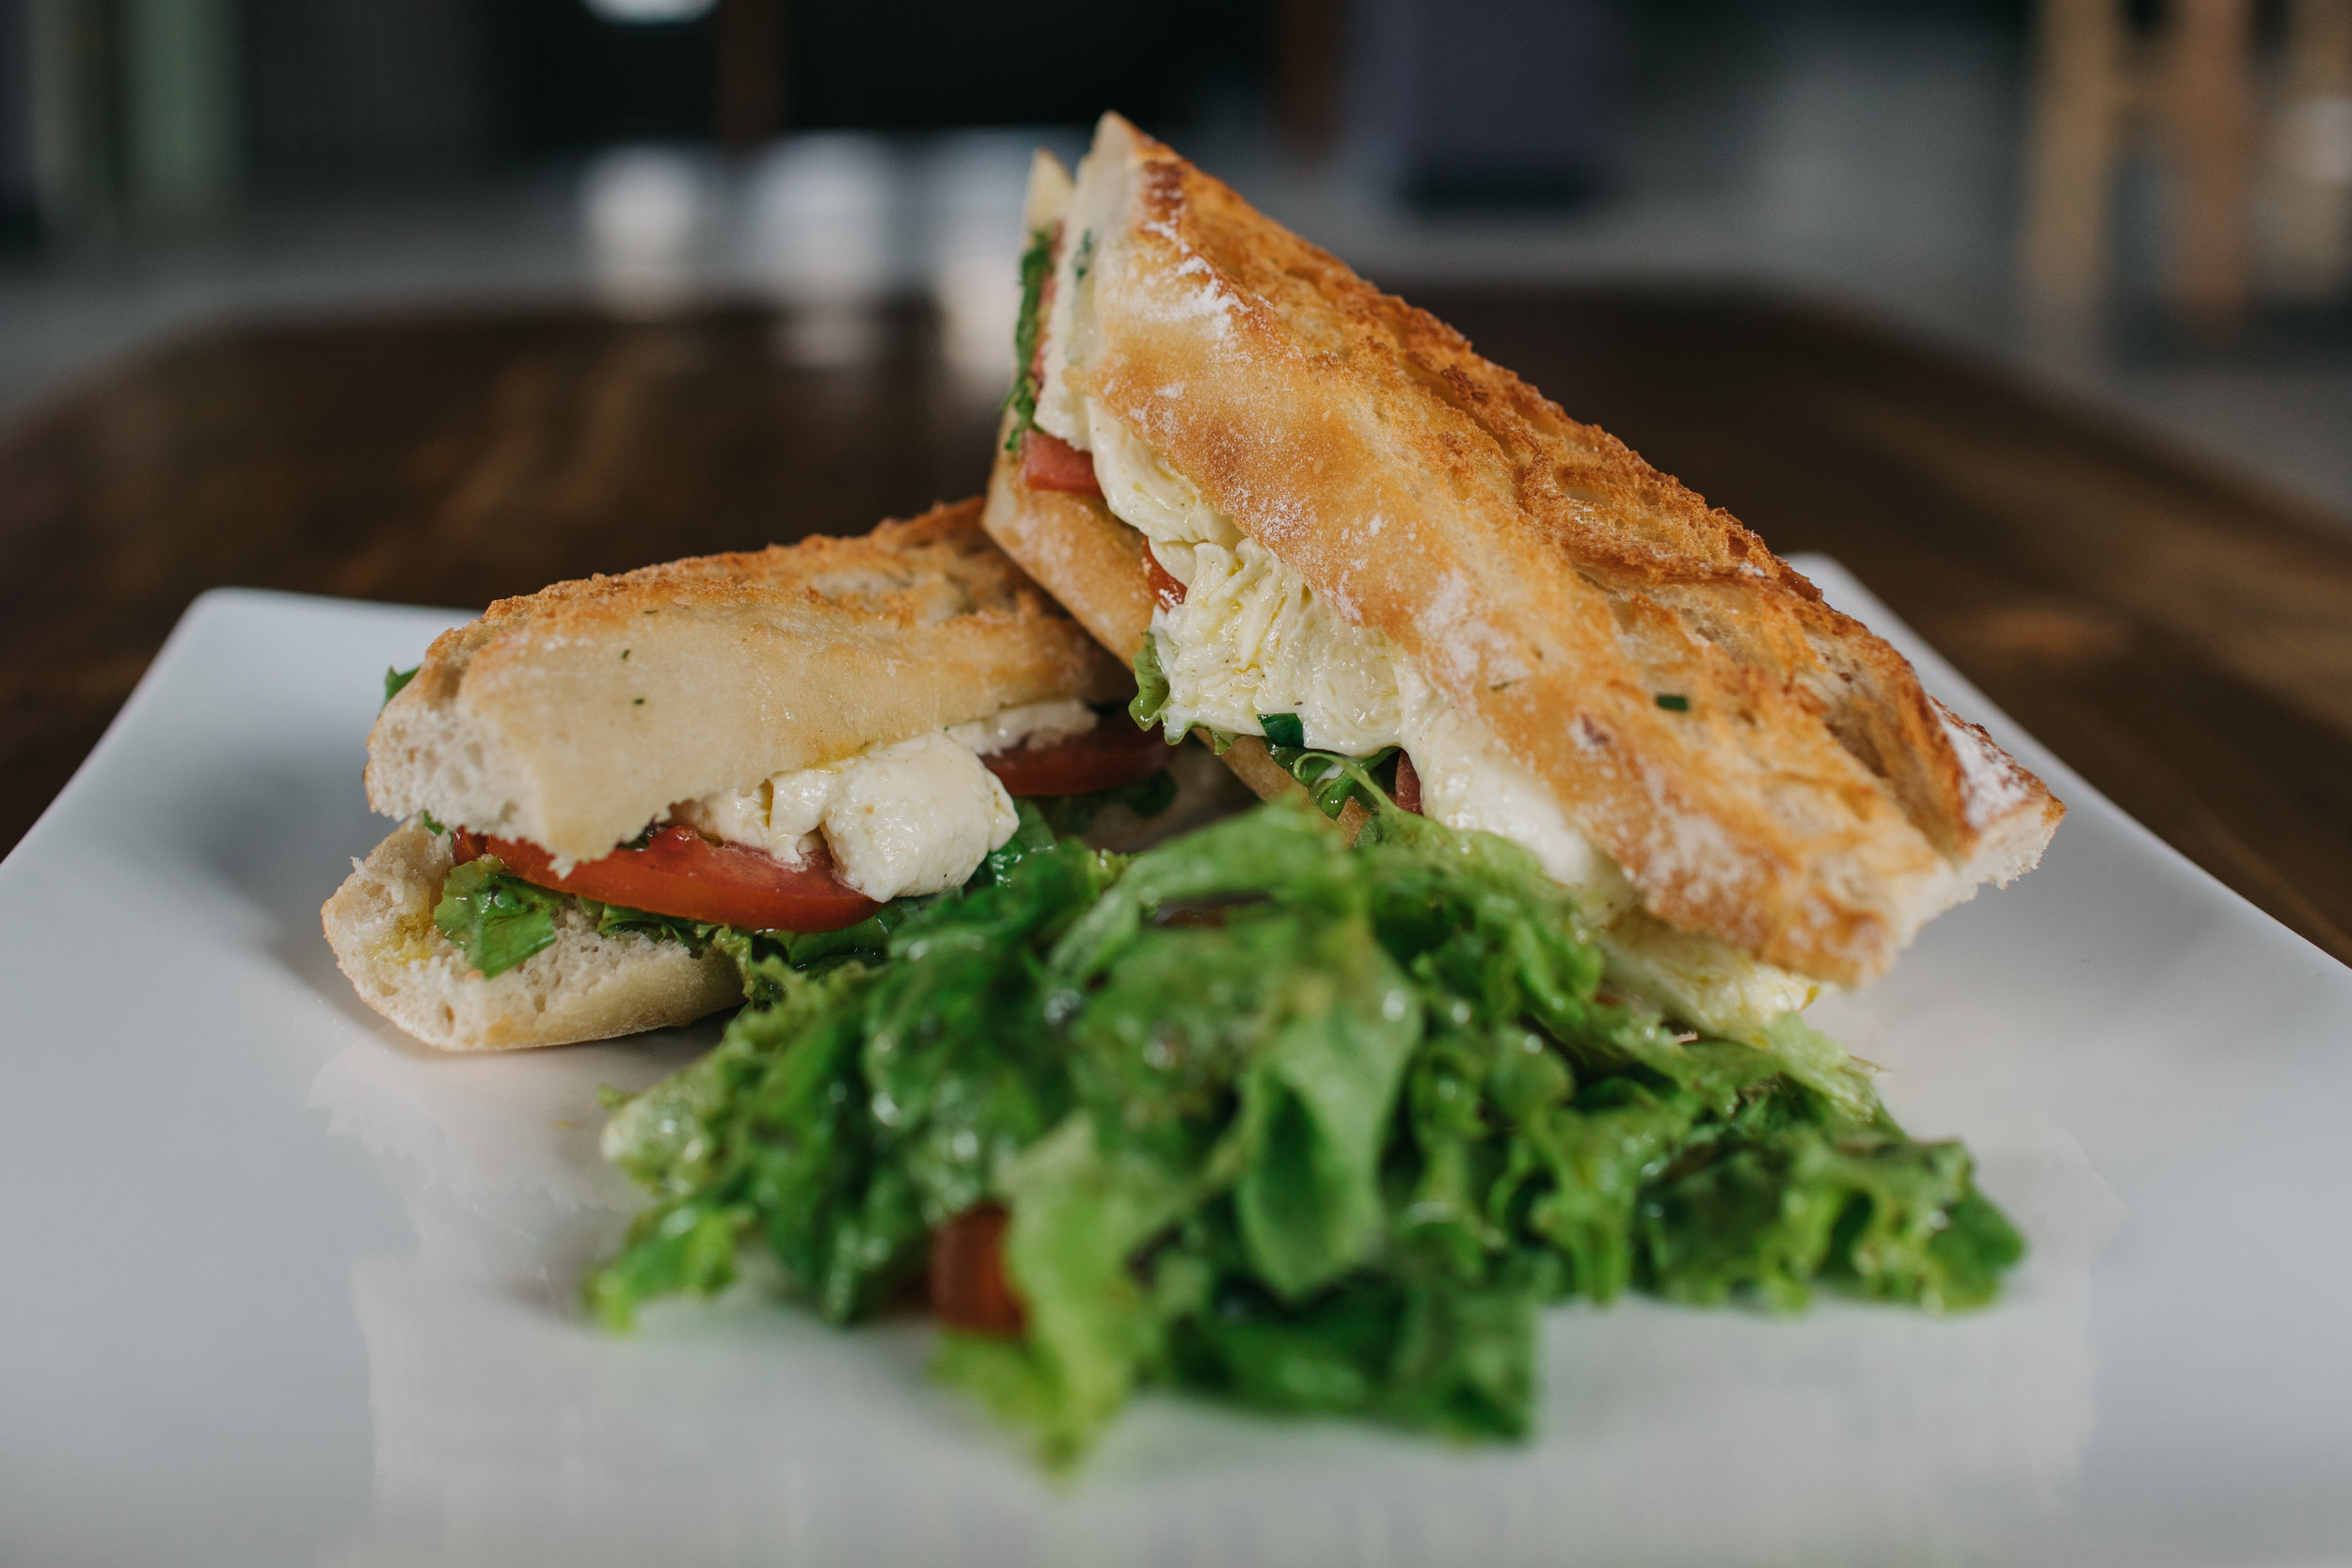 Lunch: : Sandwiches + Wraps come with a small house salad or fresh chips. - Featuring Tomato Mozzarella Sandwich with salad.